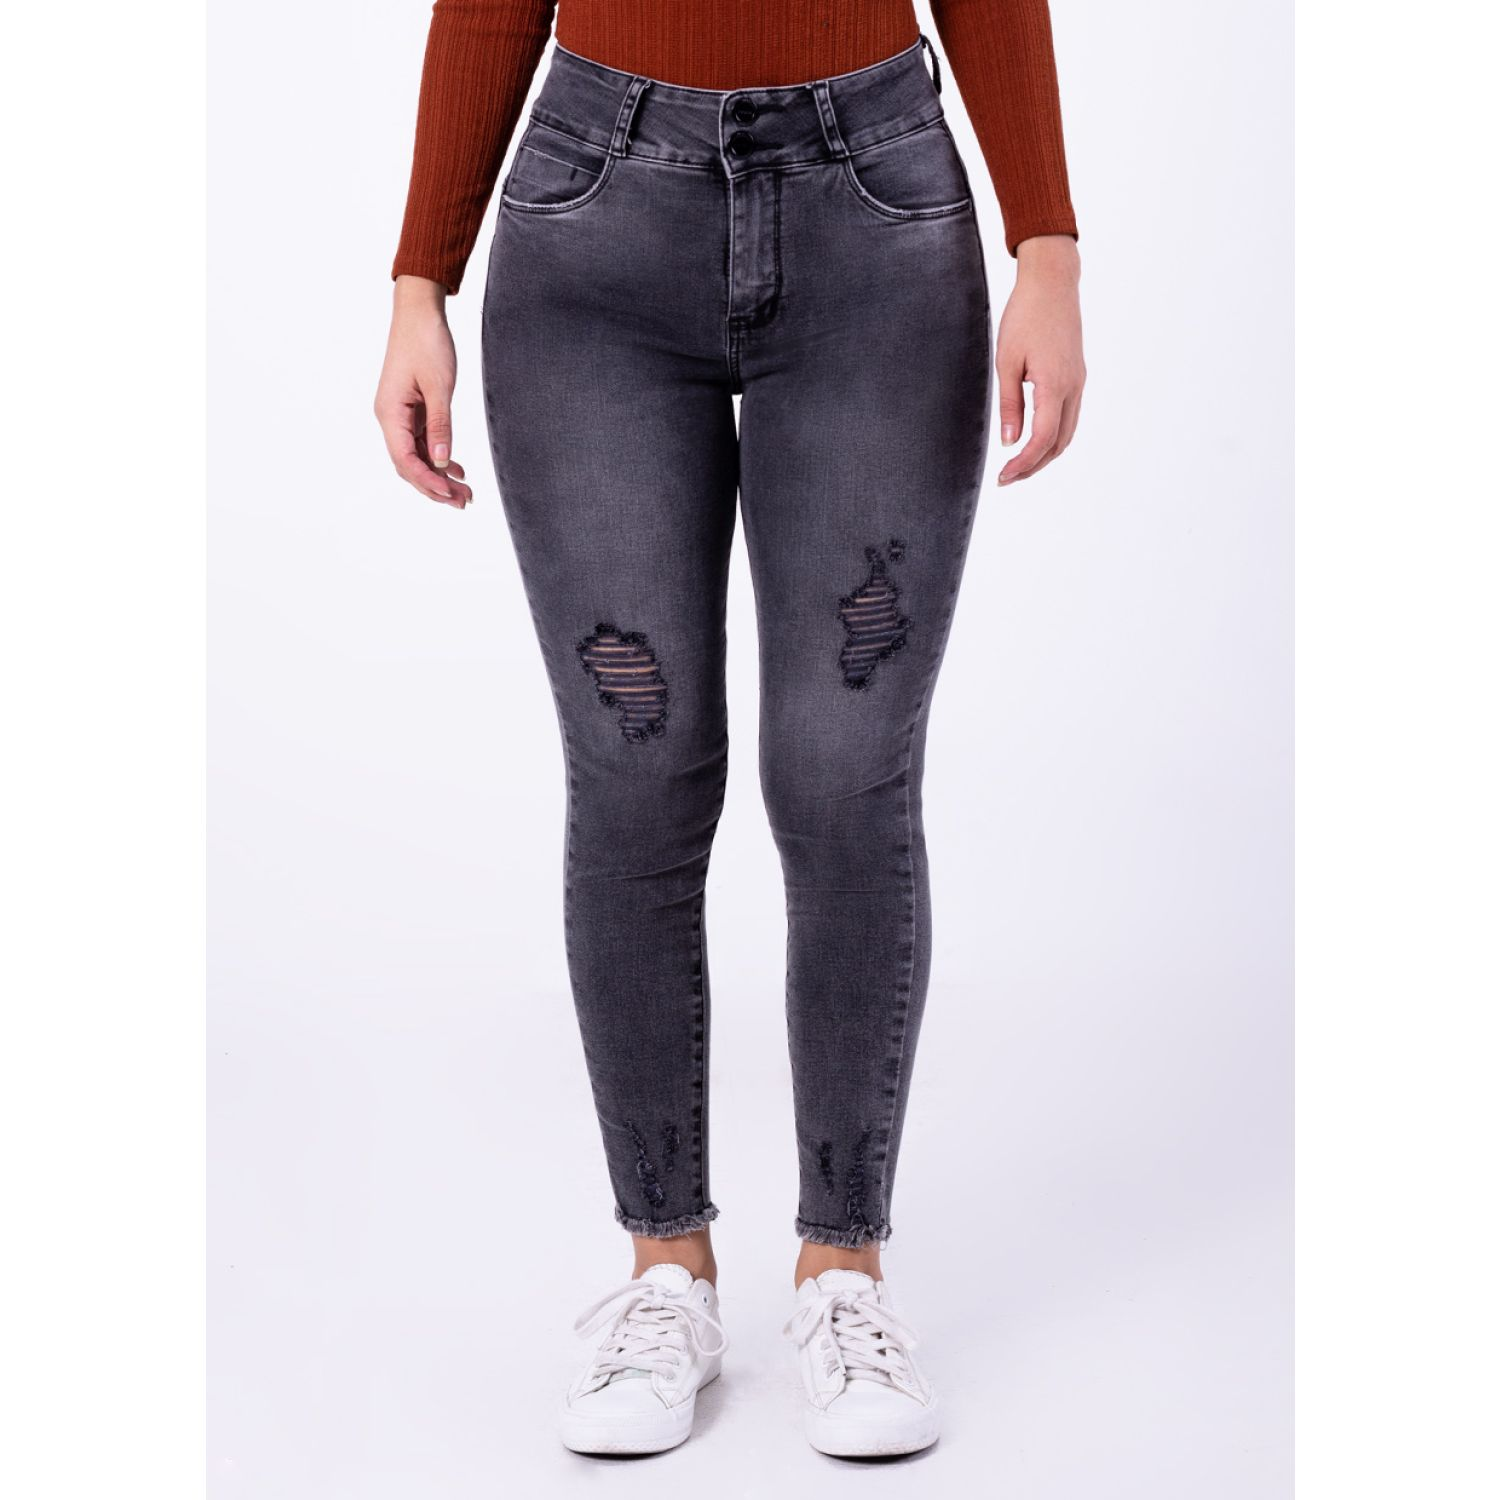 PIONIER Jeans Cnt/Tbl Yvanna TOTAL GRAY DSTYR Casual